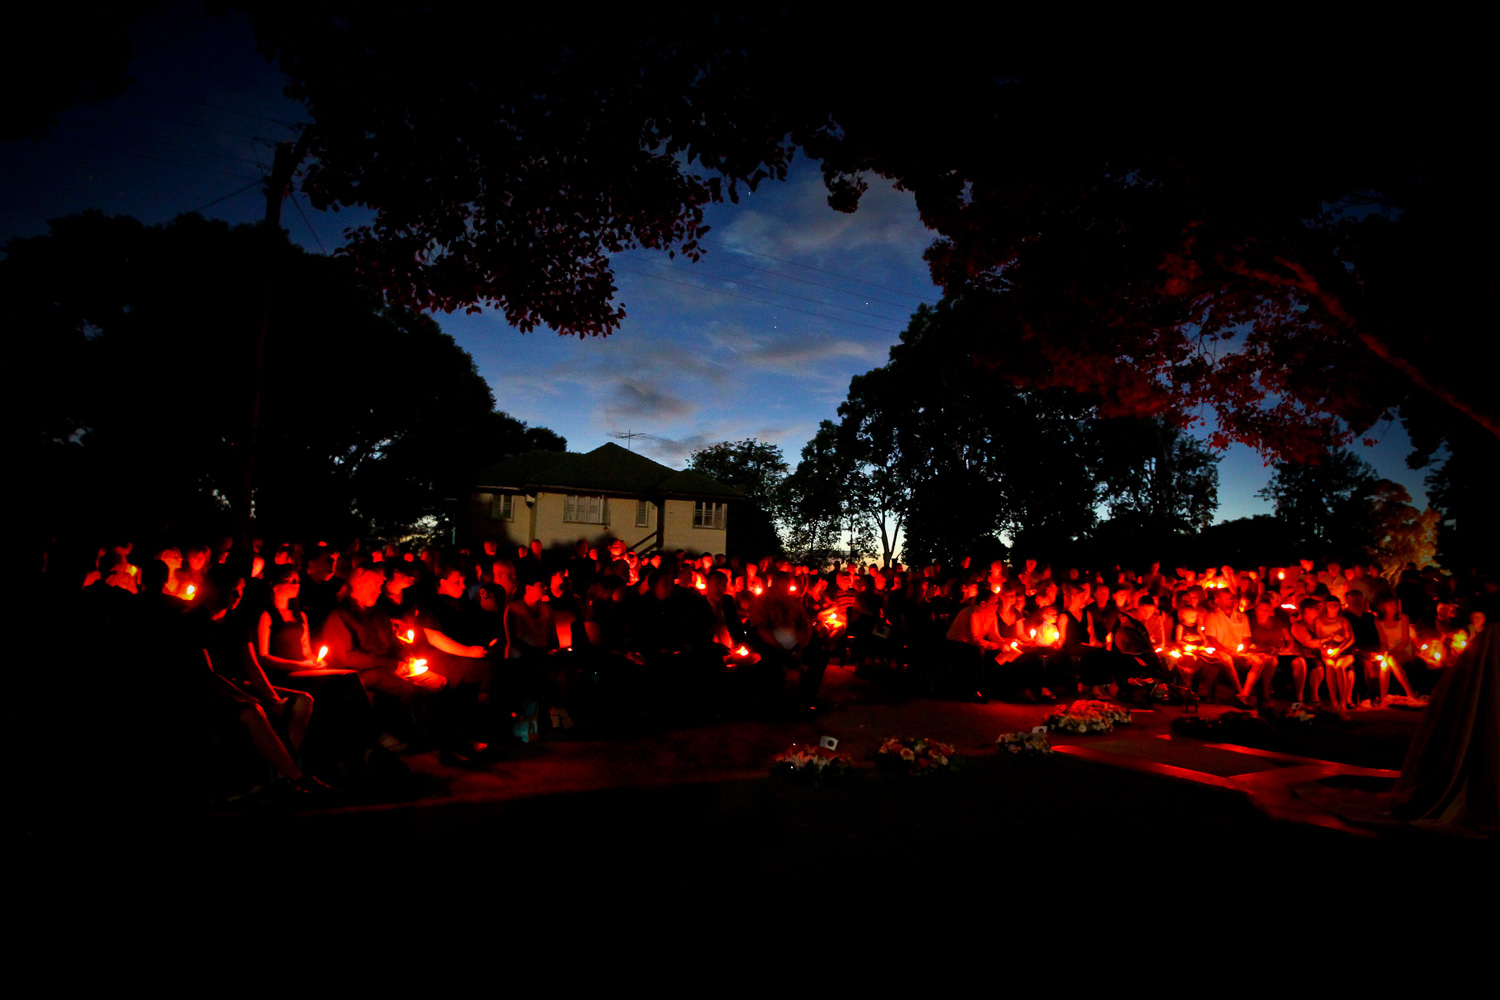 January 10, 2012. Residents of Grantham hold candles as they quietly pay their respects during the dawn memorial service at Grantham, Australia. January marks one year since flash flooding tore through the communities of Toowoomba and the Lockyer Valley killing 35 people when more than 70 percent of the state of Queensland was flooded.